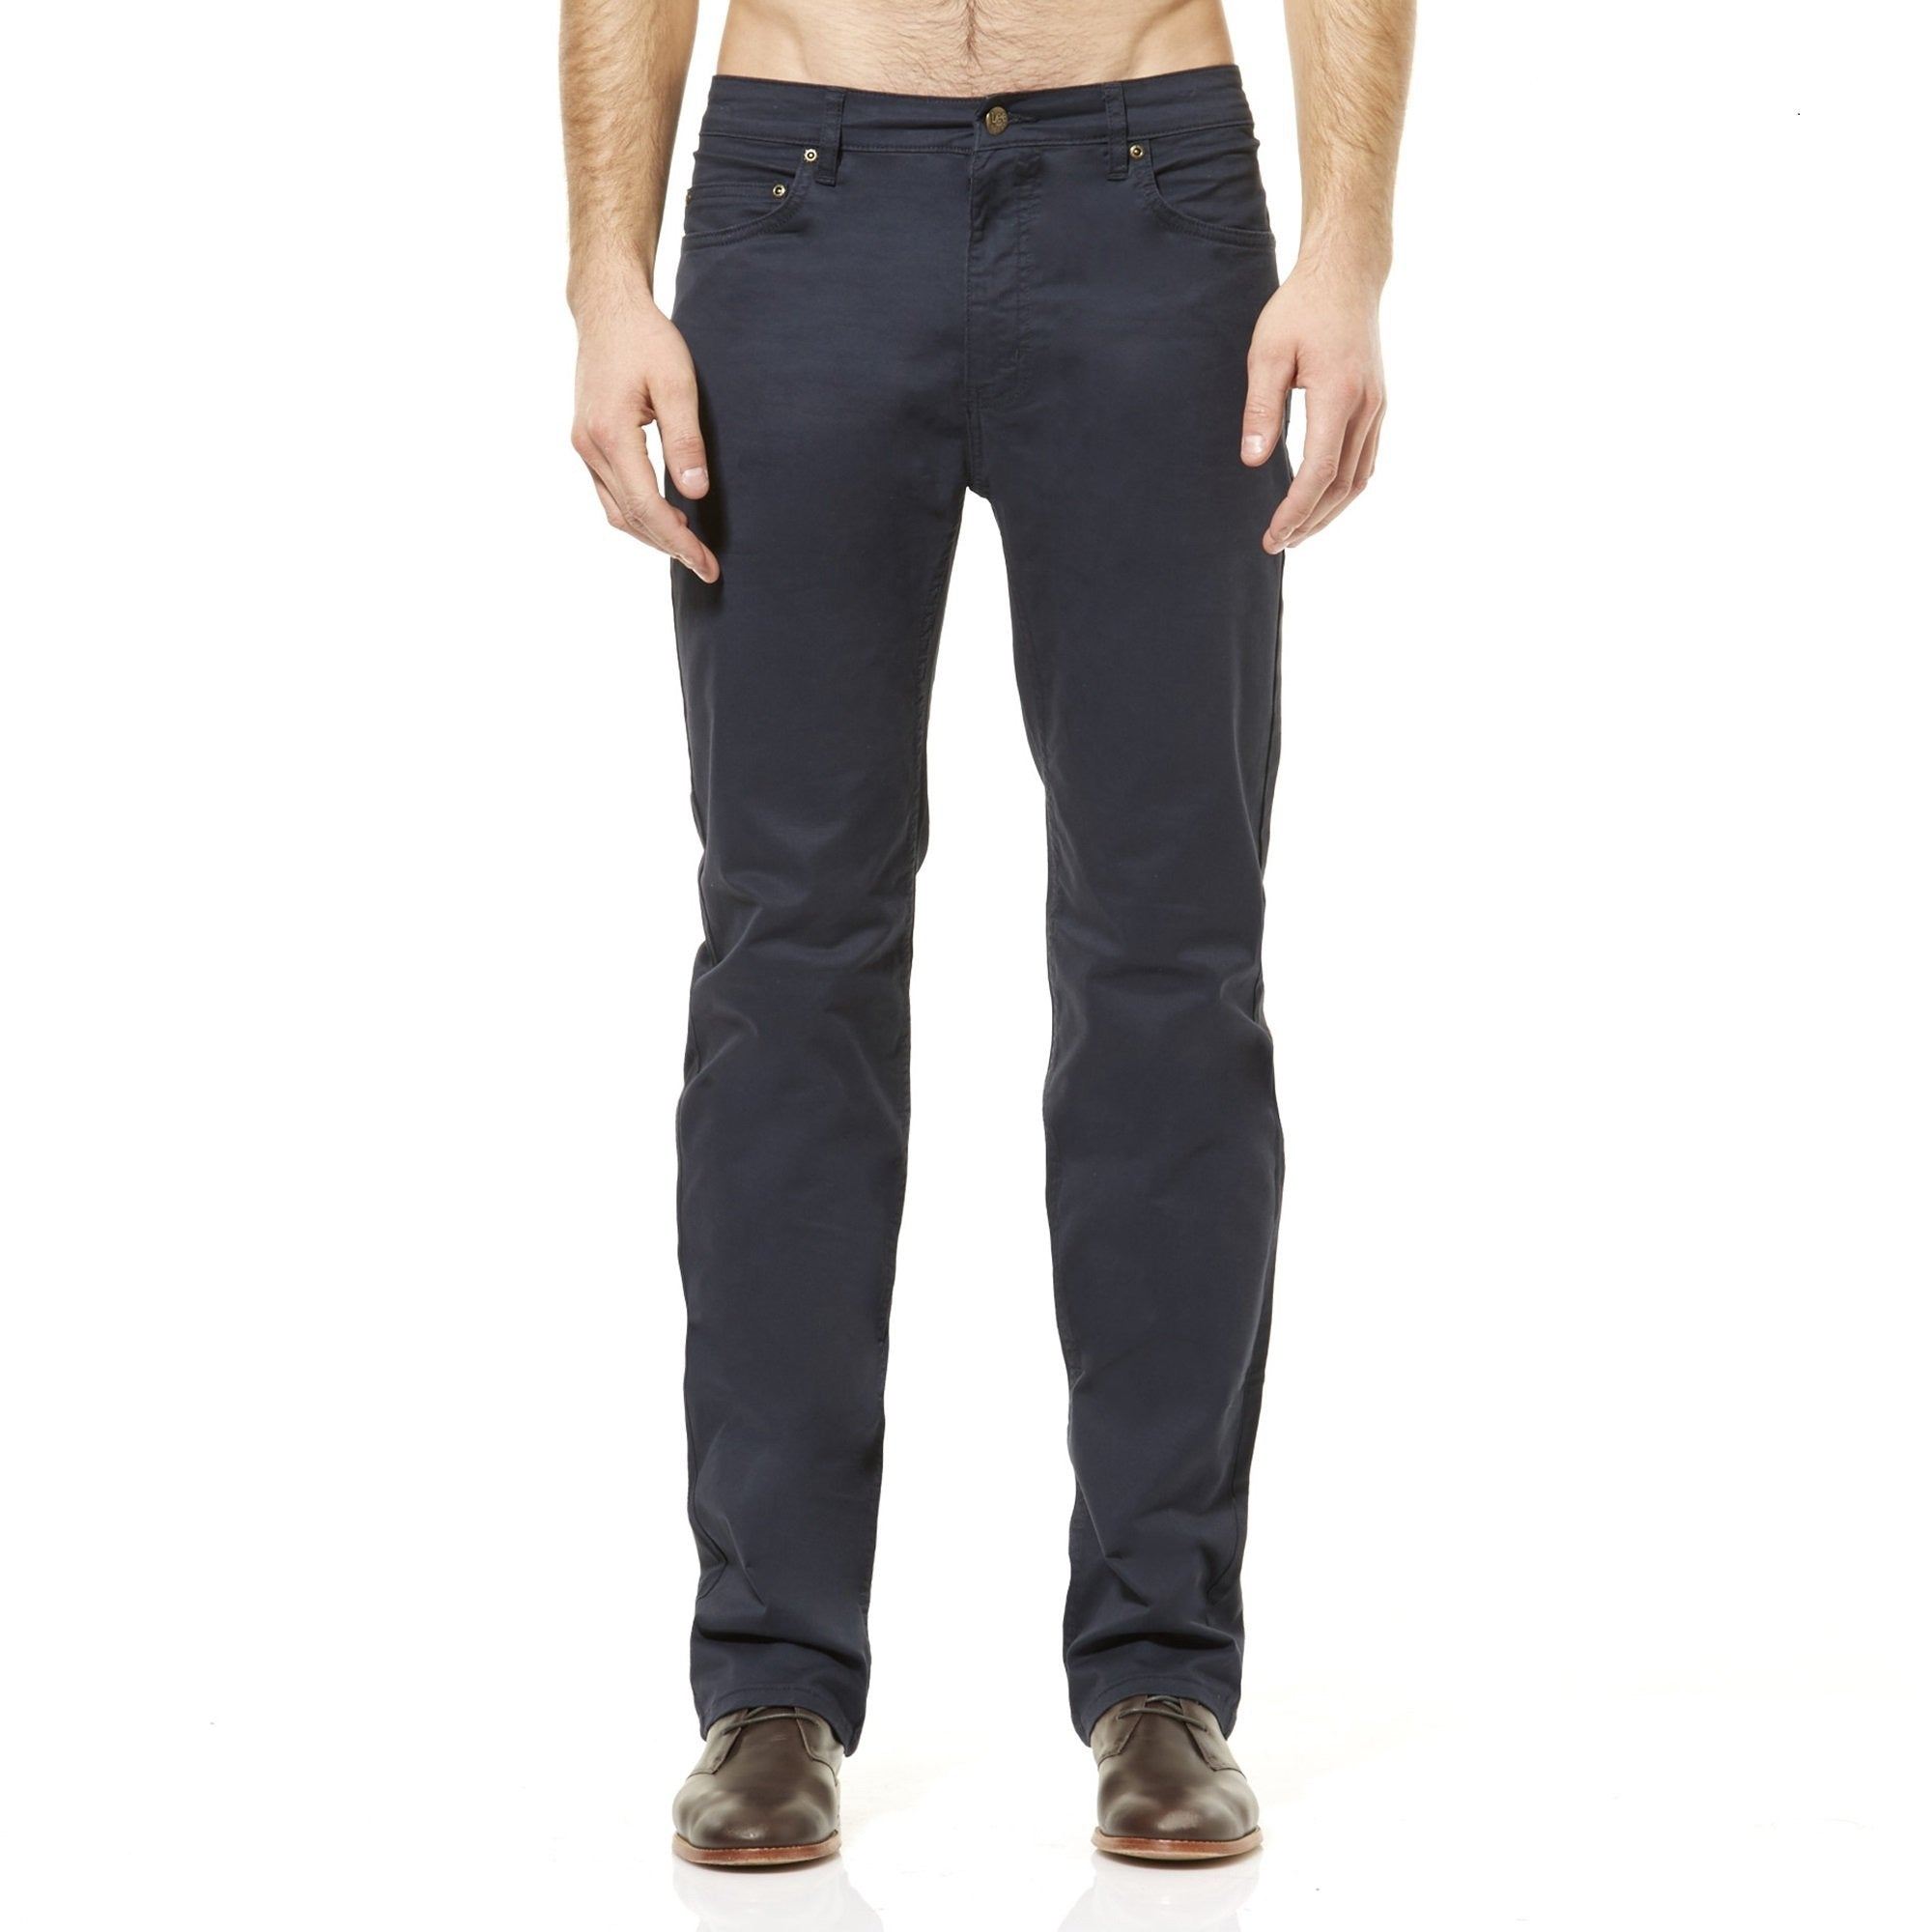 Riders Straight Pant Stretch (4498179293321)